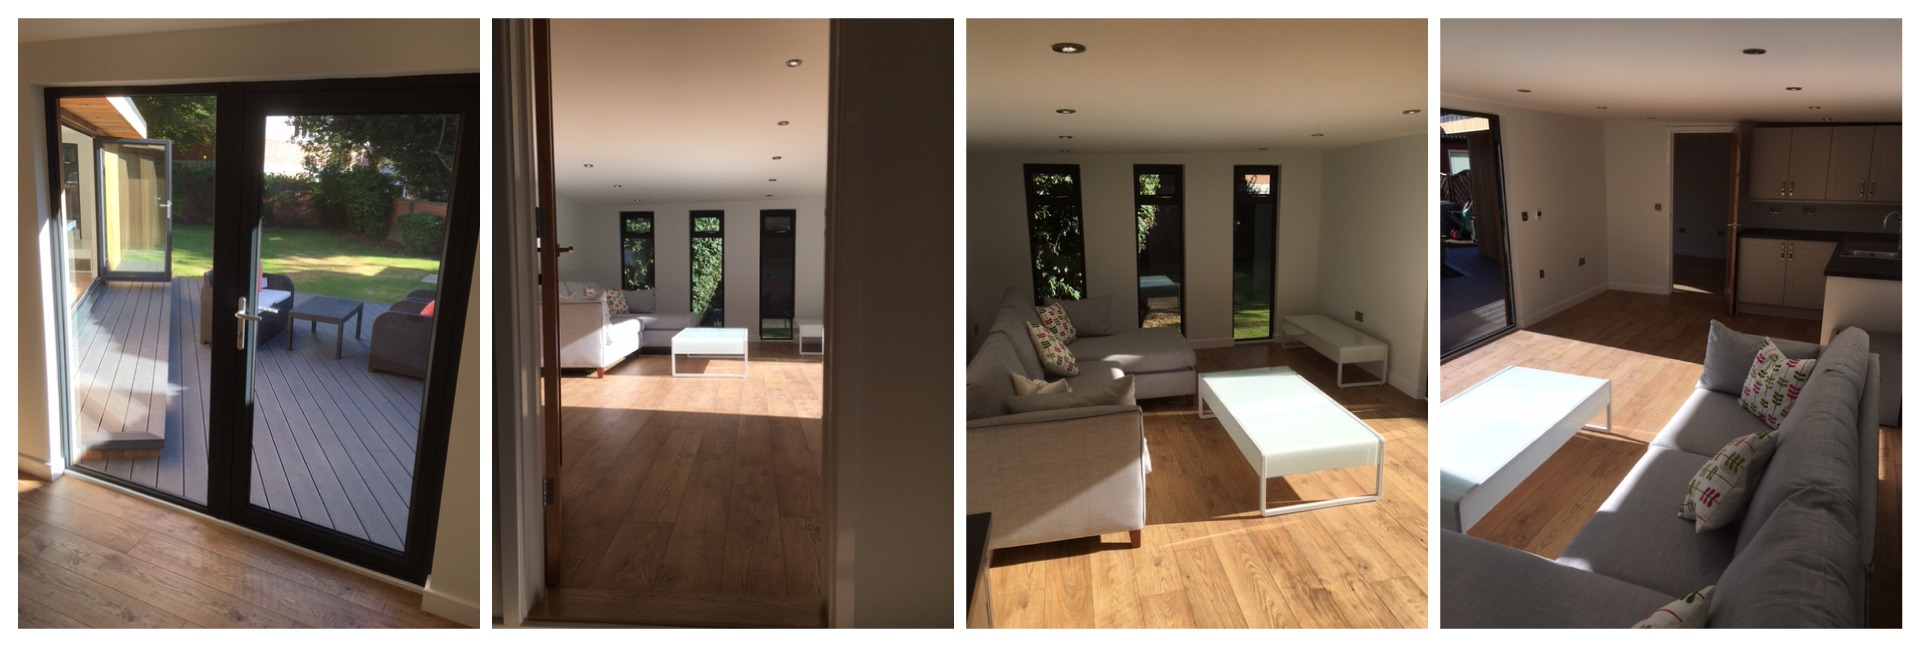 multiple images from inside large garden room